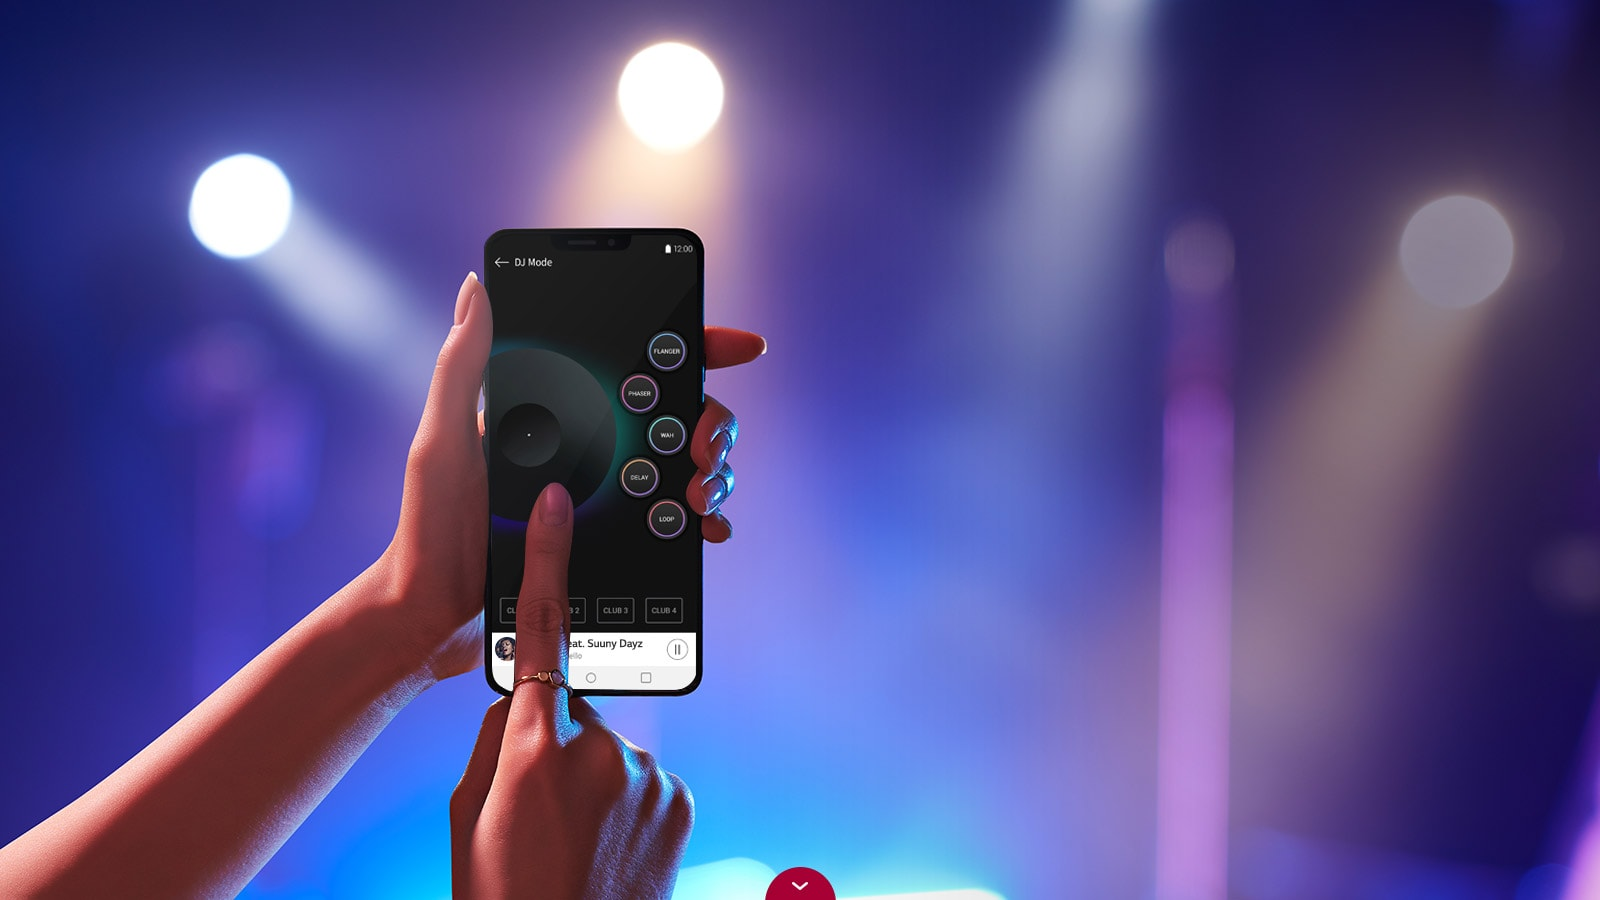 Control Remotely with the DJ App1